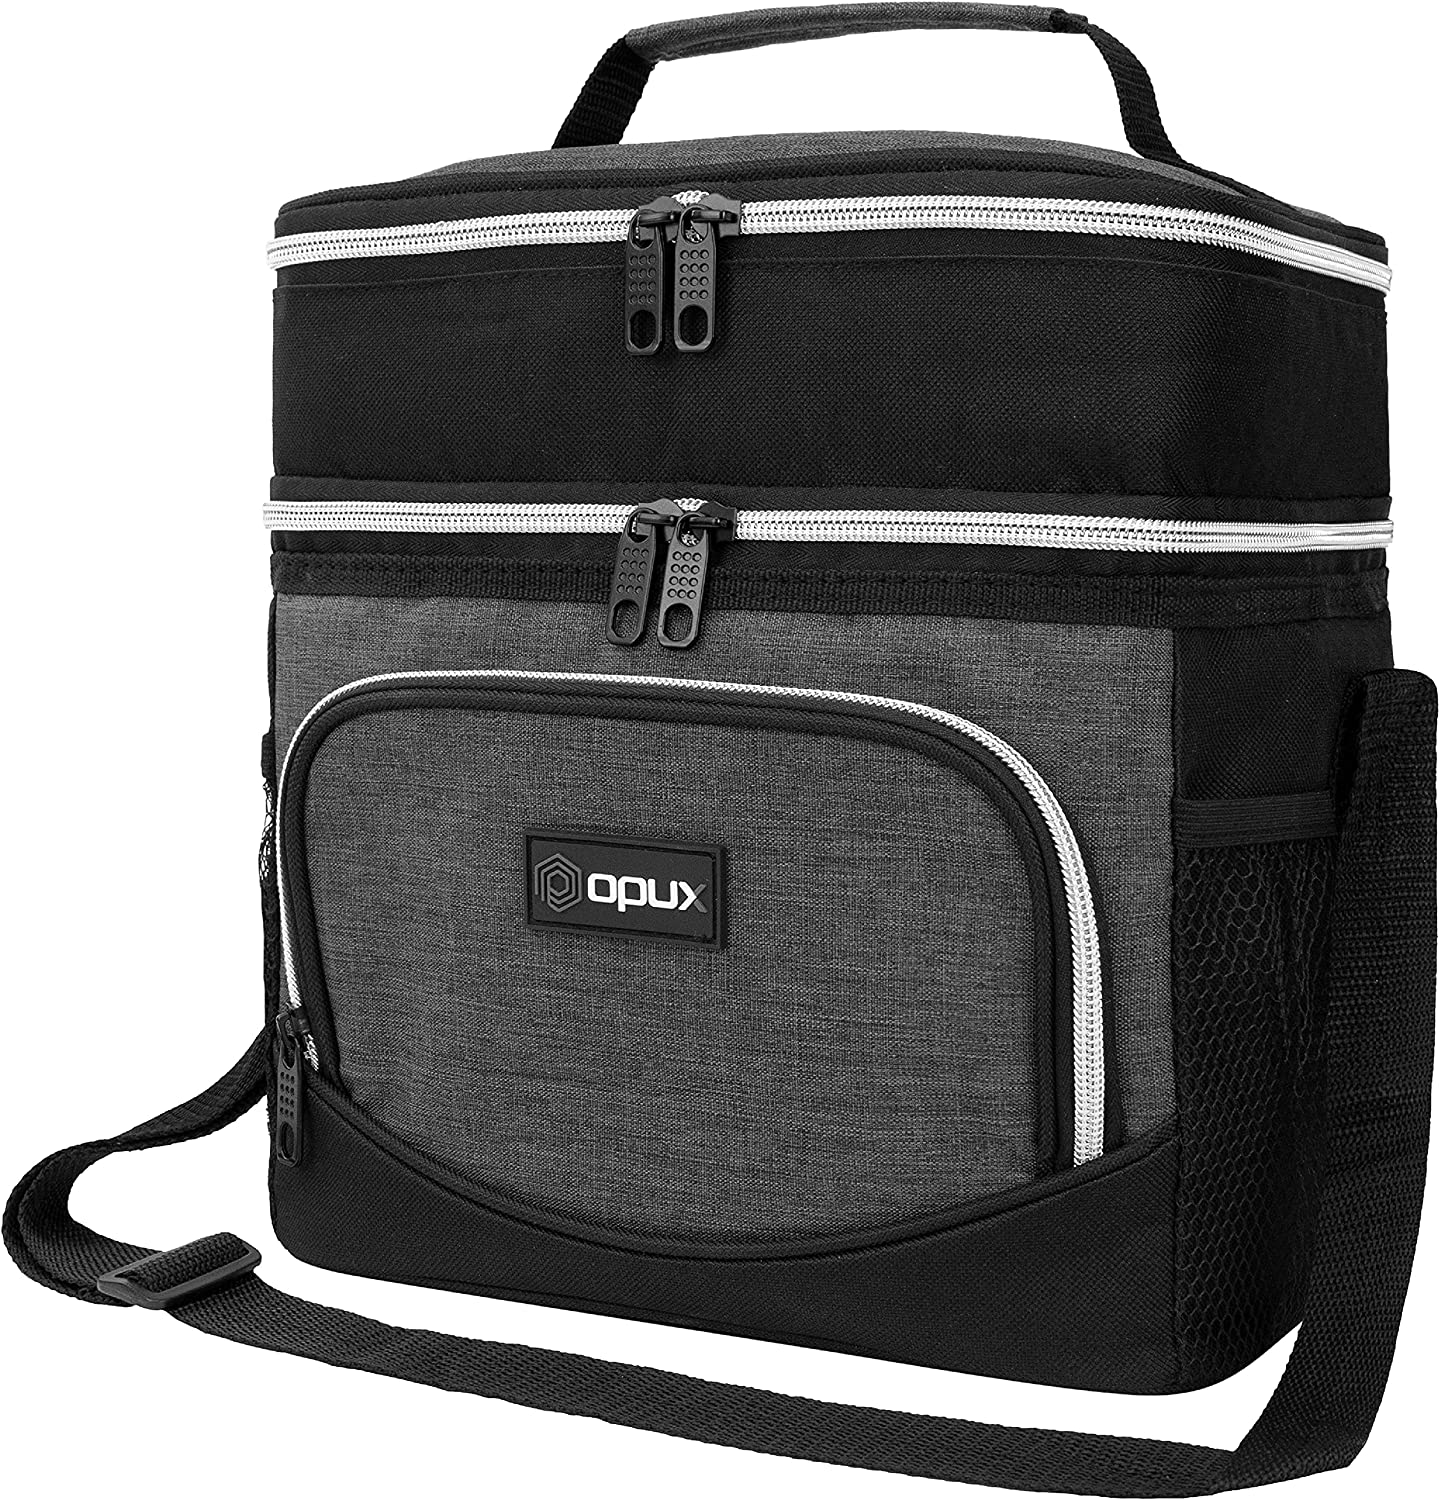 OPUX Insulated Dual Compartment Lunch Box Men Women | Leakproof Double Deck Lunch Bag Work Office School | Soft Cooler Tote Shoulder Strap Adult Kid | Reusable Thermal Lunch Pail Kit 12 Can, Dark Gray